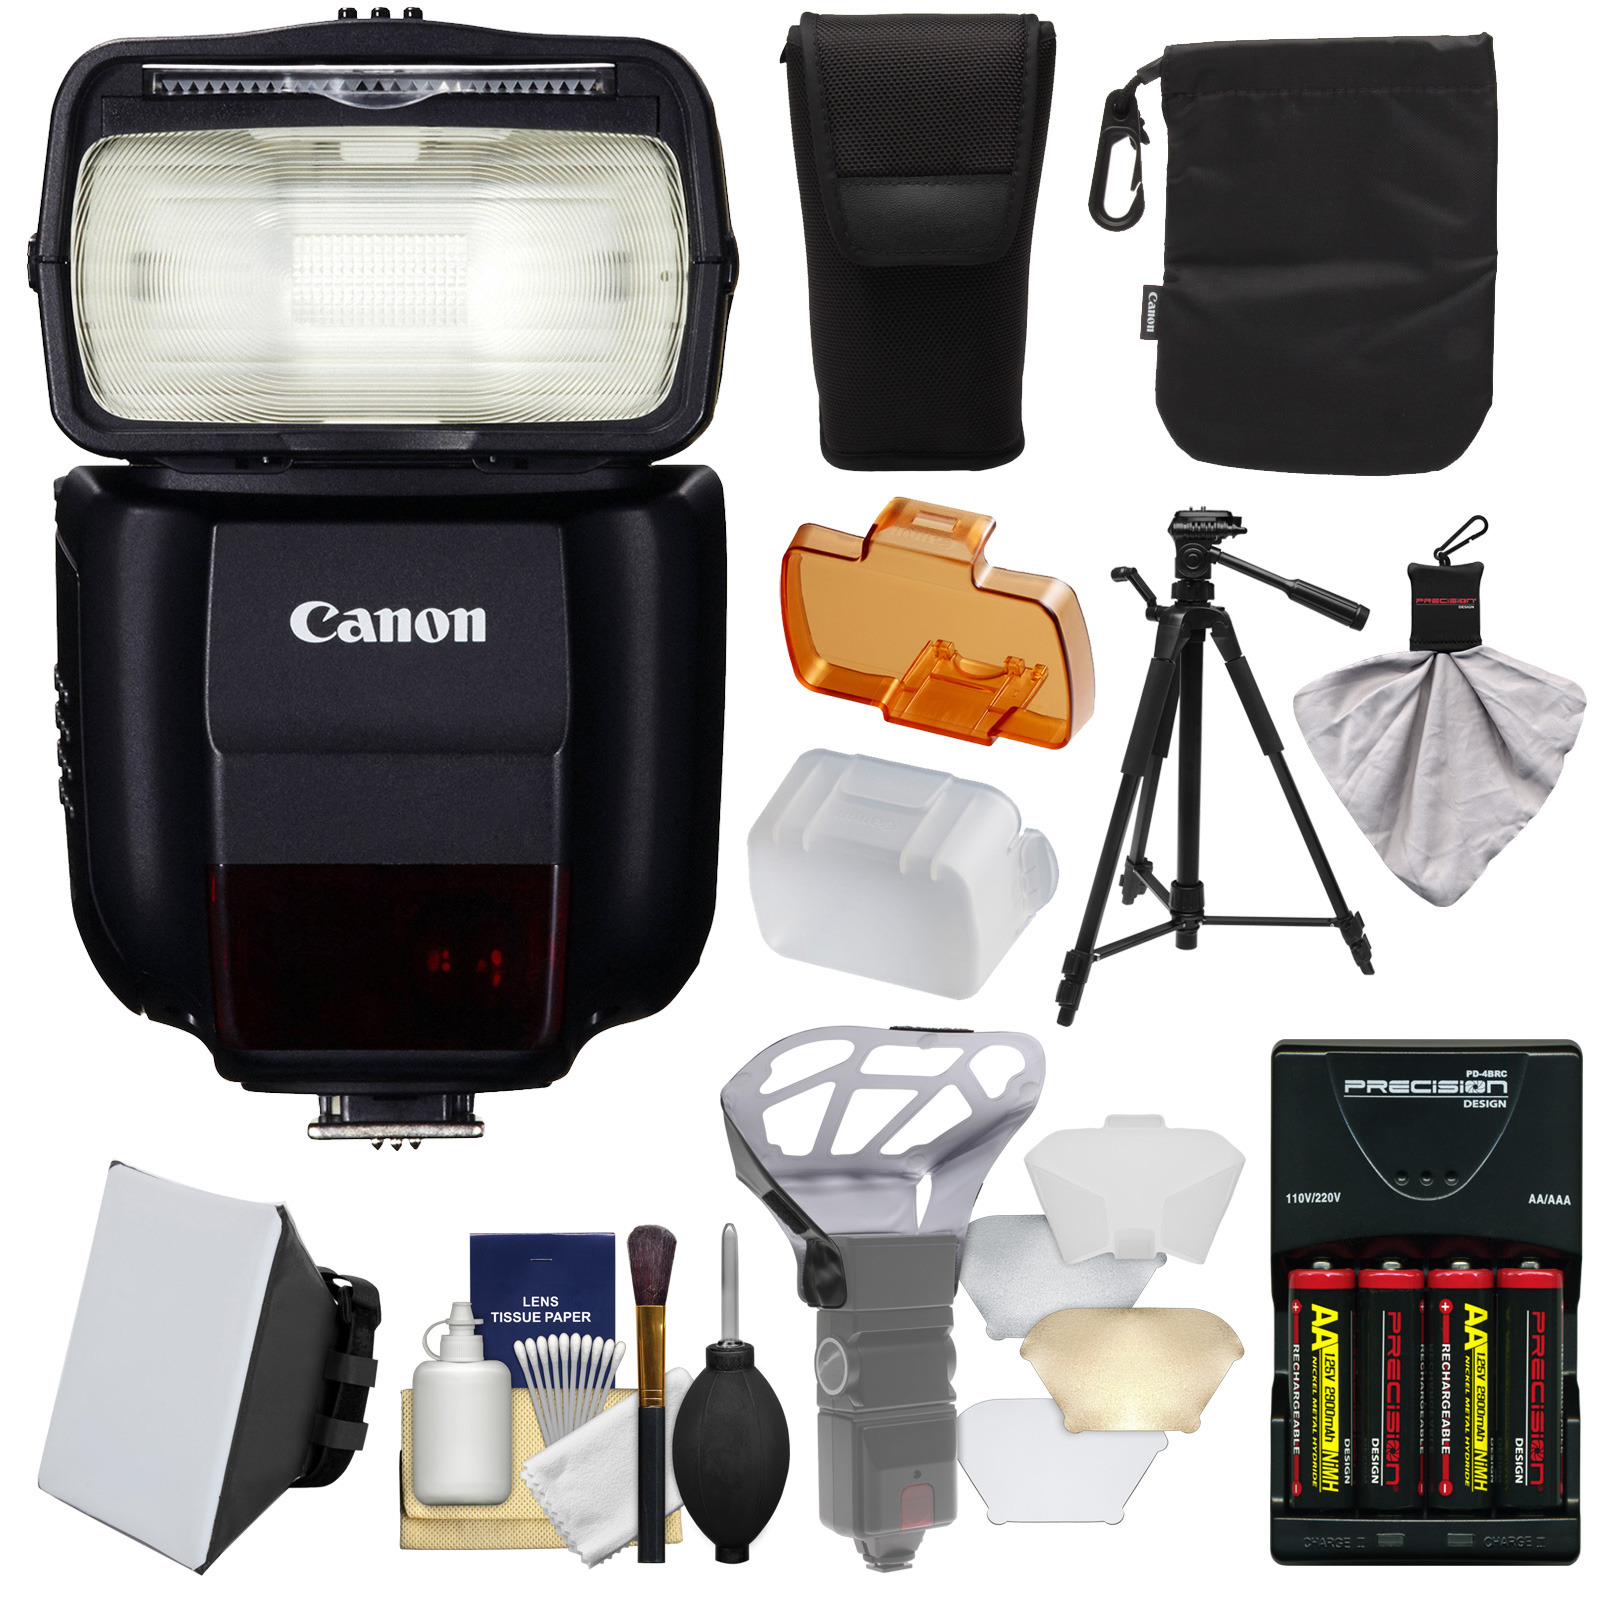 Canon Speedlite 430EX III-RT Flash with Softbox + Bounce Diffuser + Batteries & Charger + Tripod + Kit for Rebel T5, T5i, T6i, T6s, EOS 70D, 7D, 6D, 5D Mark II III, 5Ds R